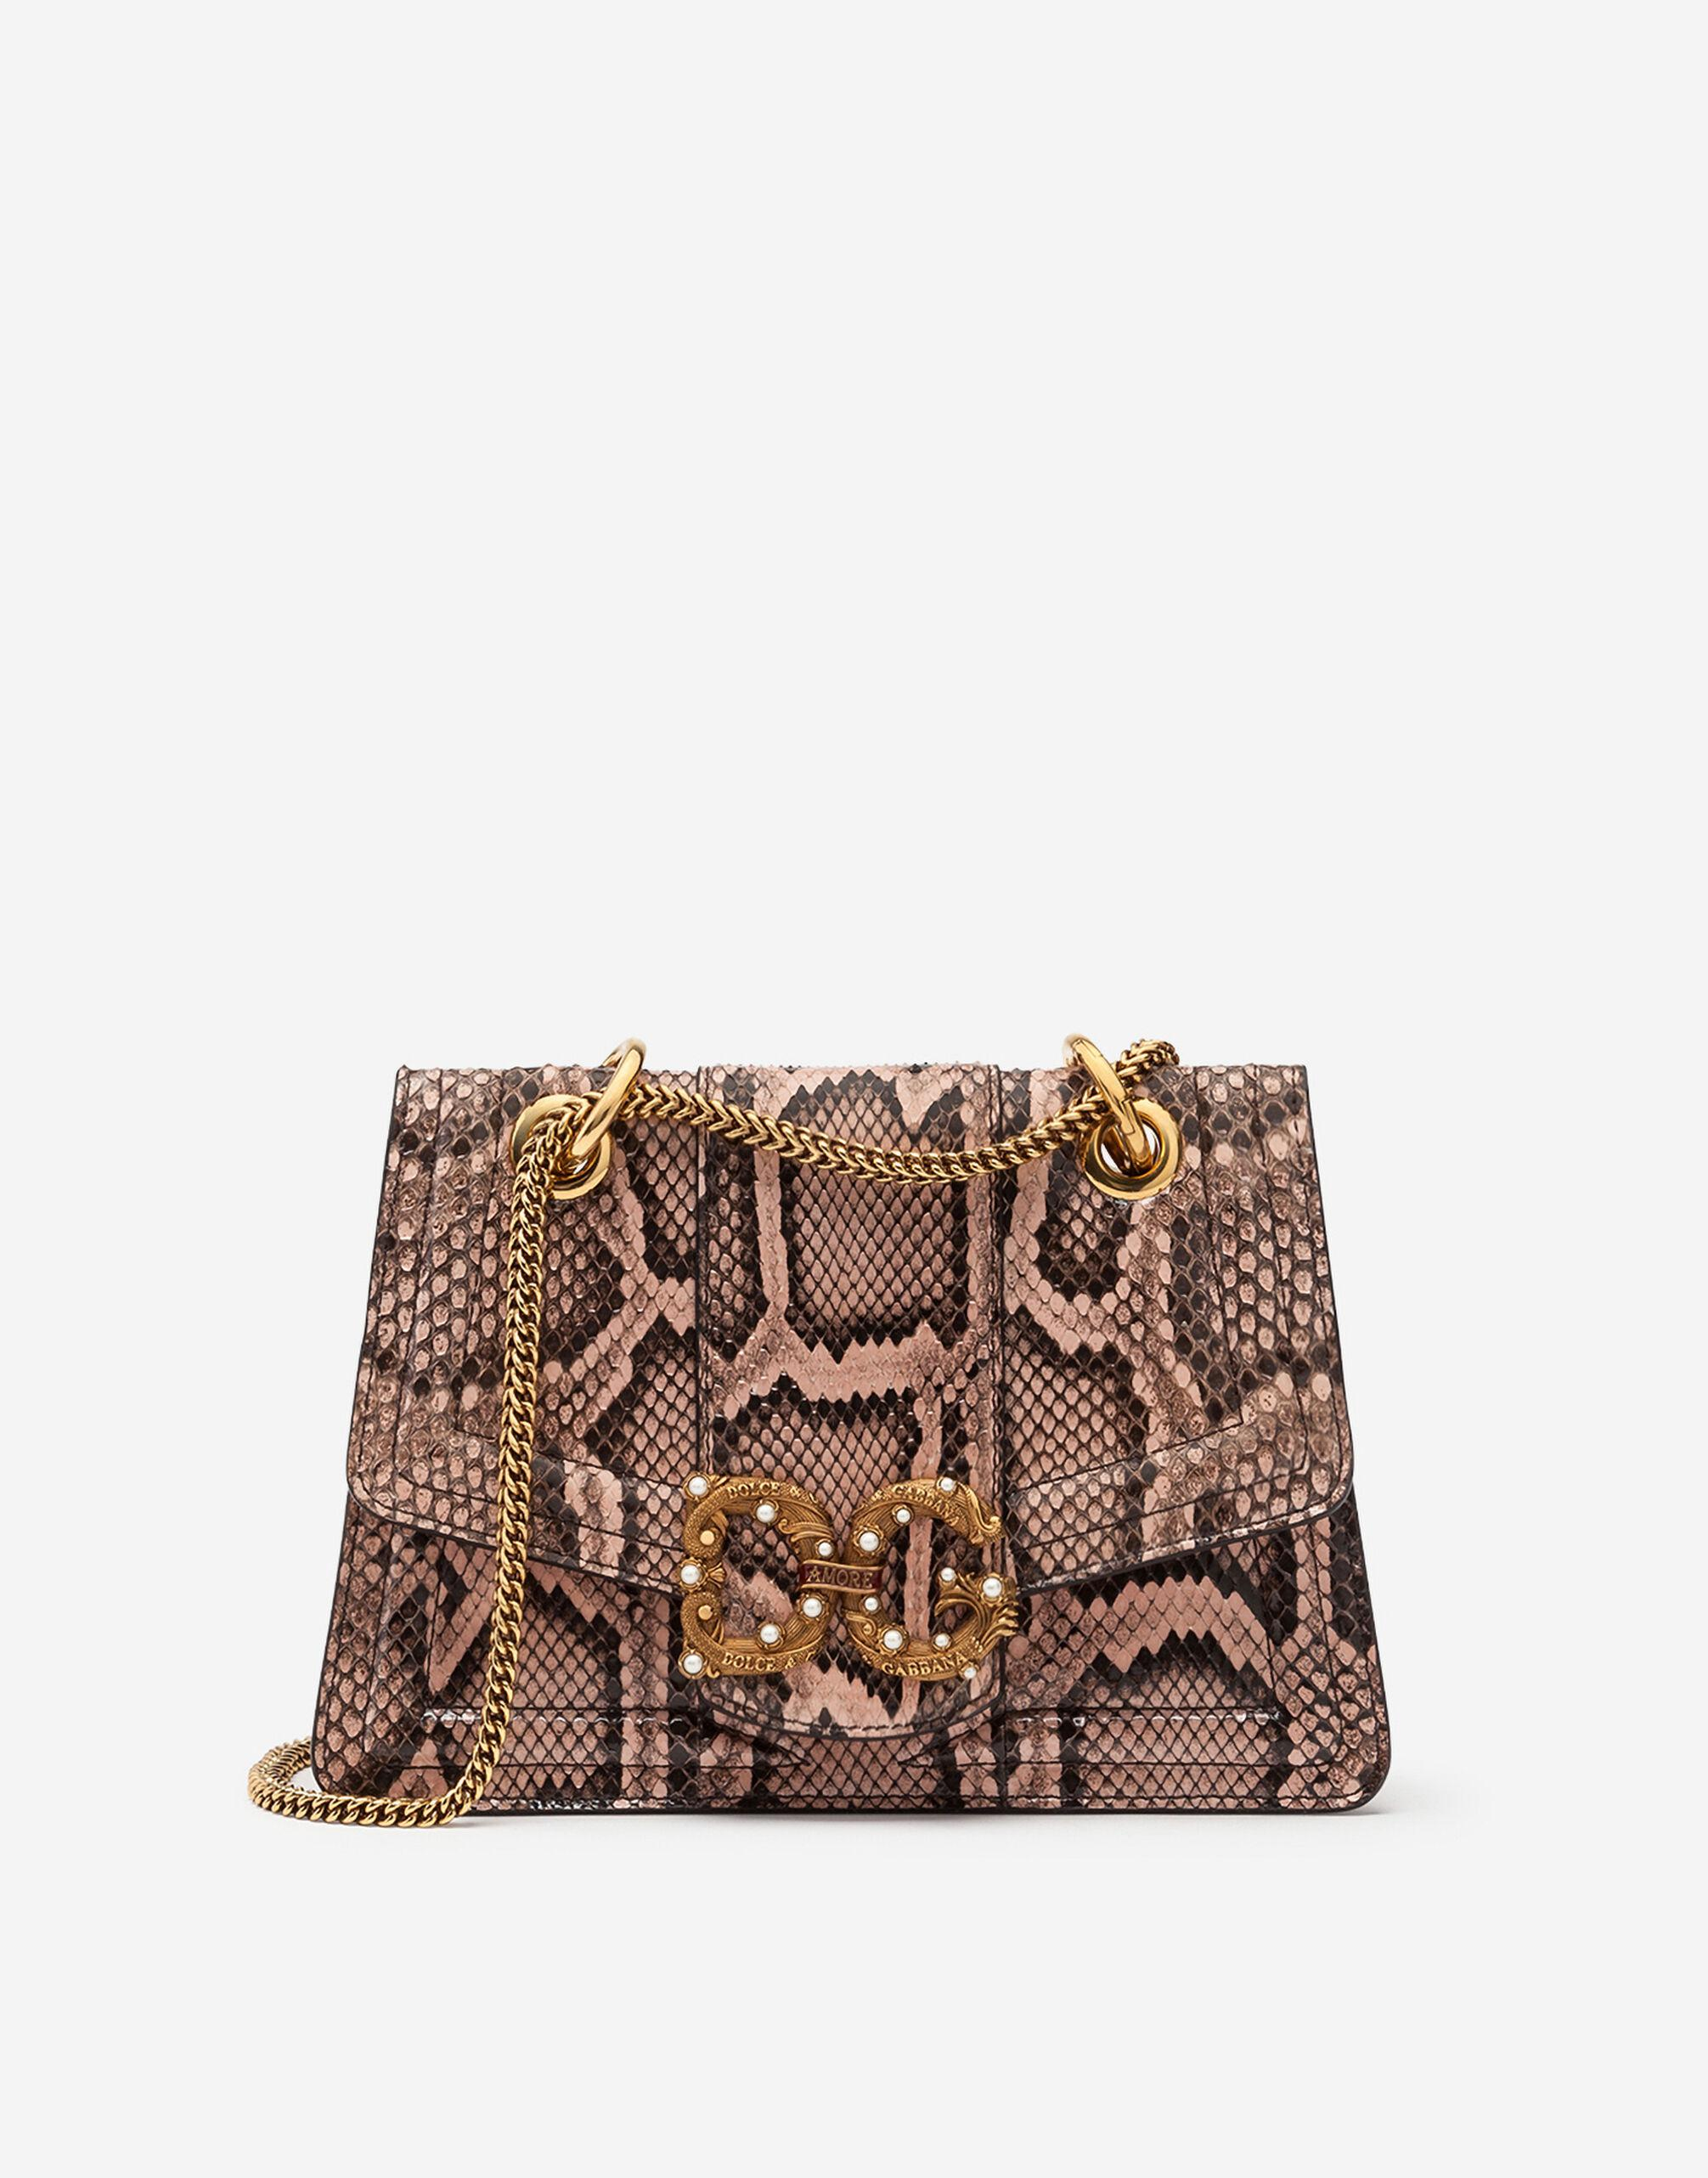 Small DG Amore bag in mixed materials